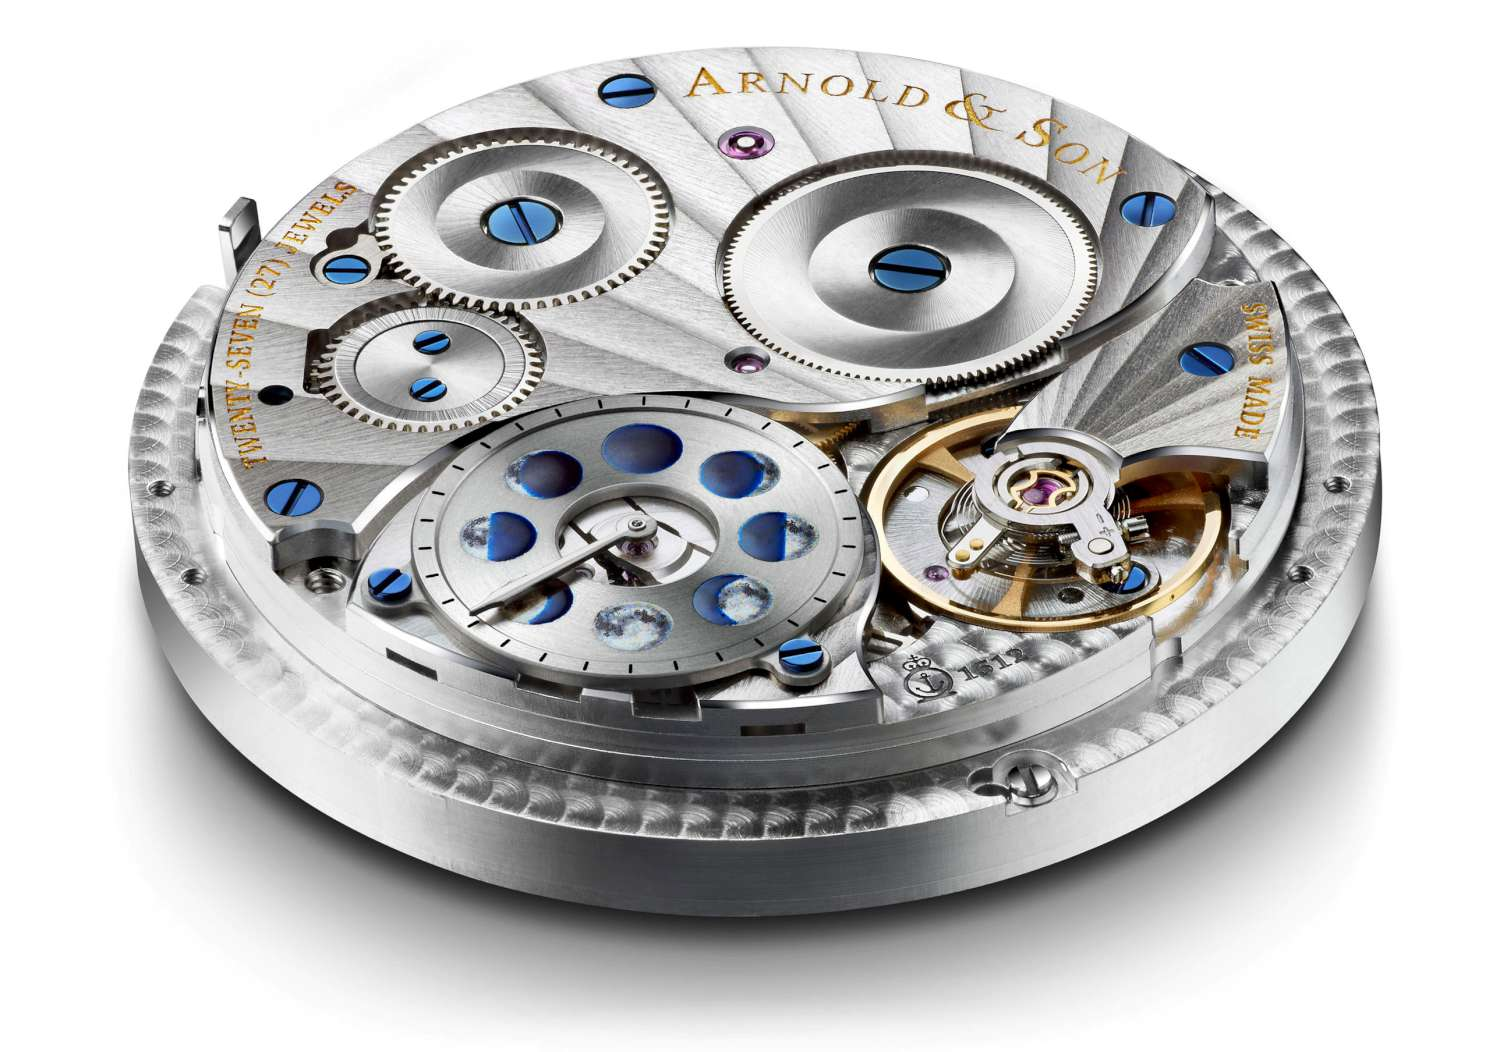 Arnold & Son HM-Perpetual-Moon_A&S1512-ST-blue_dos_perspective-1500